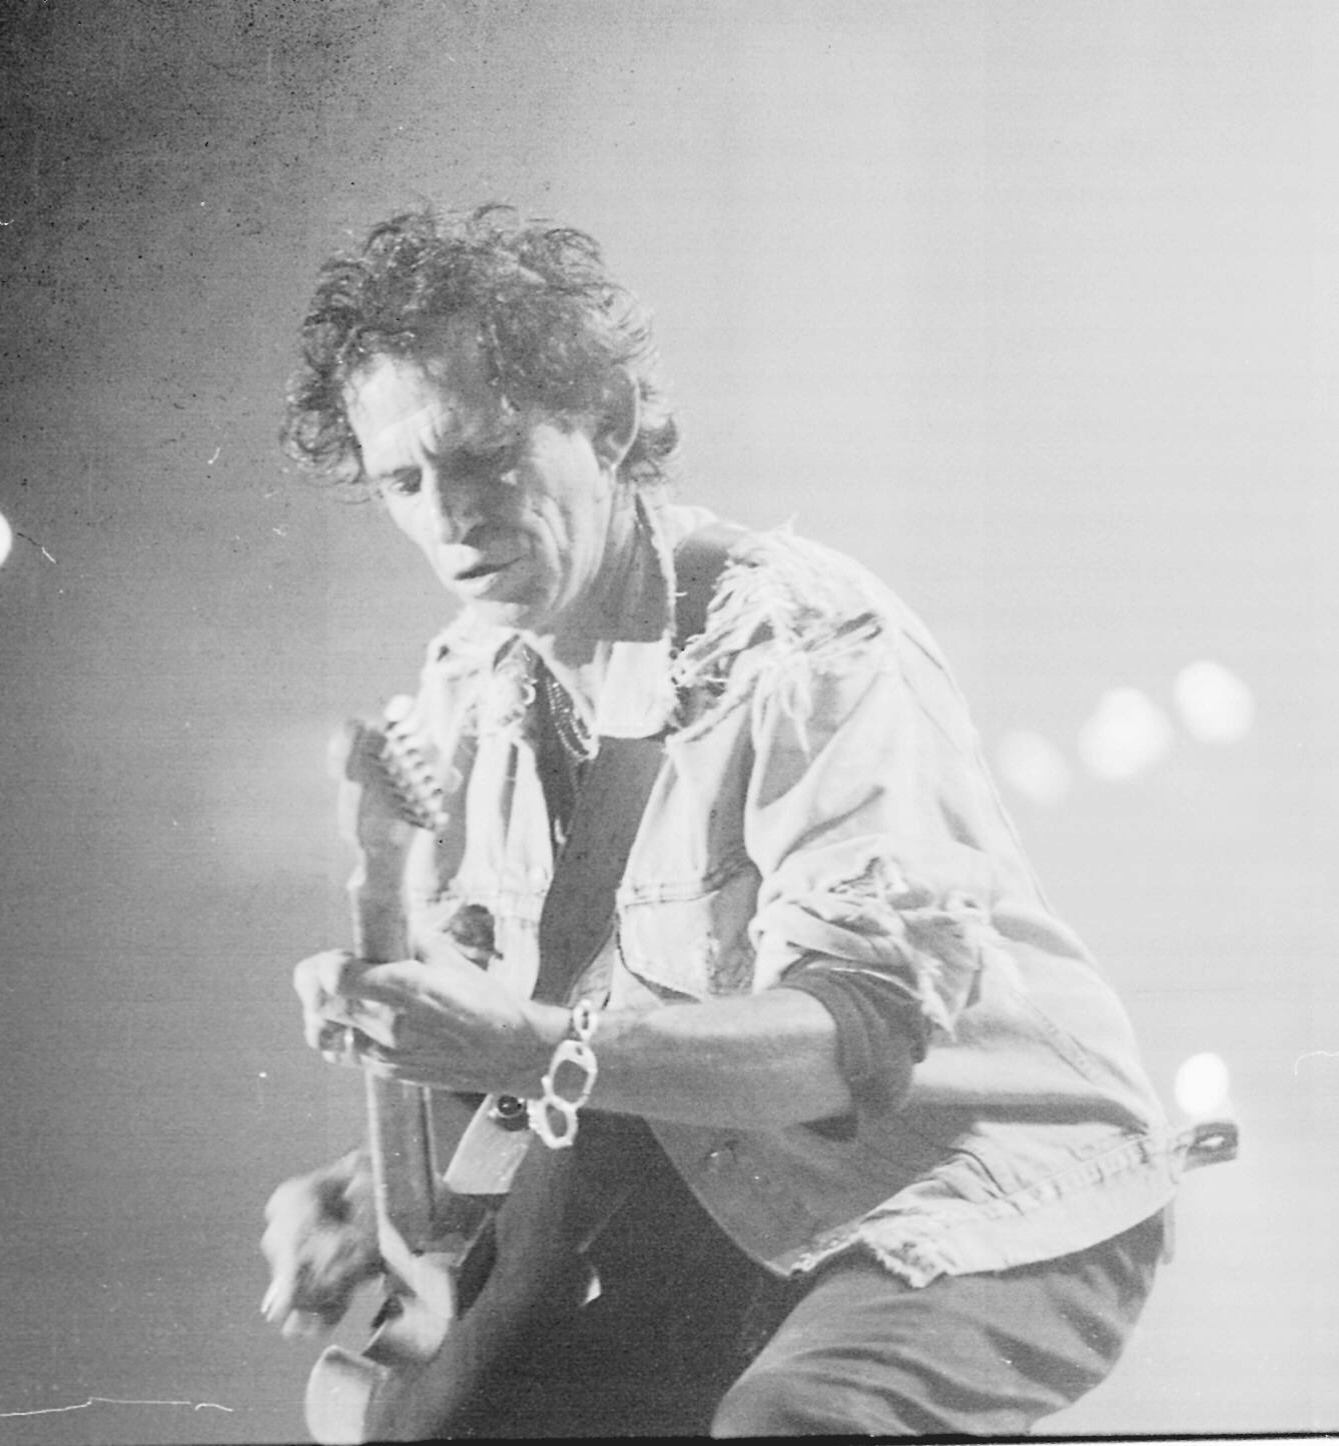 28.jan.1995 - O guitarrista Keith Richards durante o segundo show dos Rolling Stones no estádio do Pacaembu